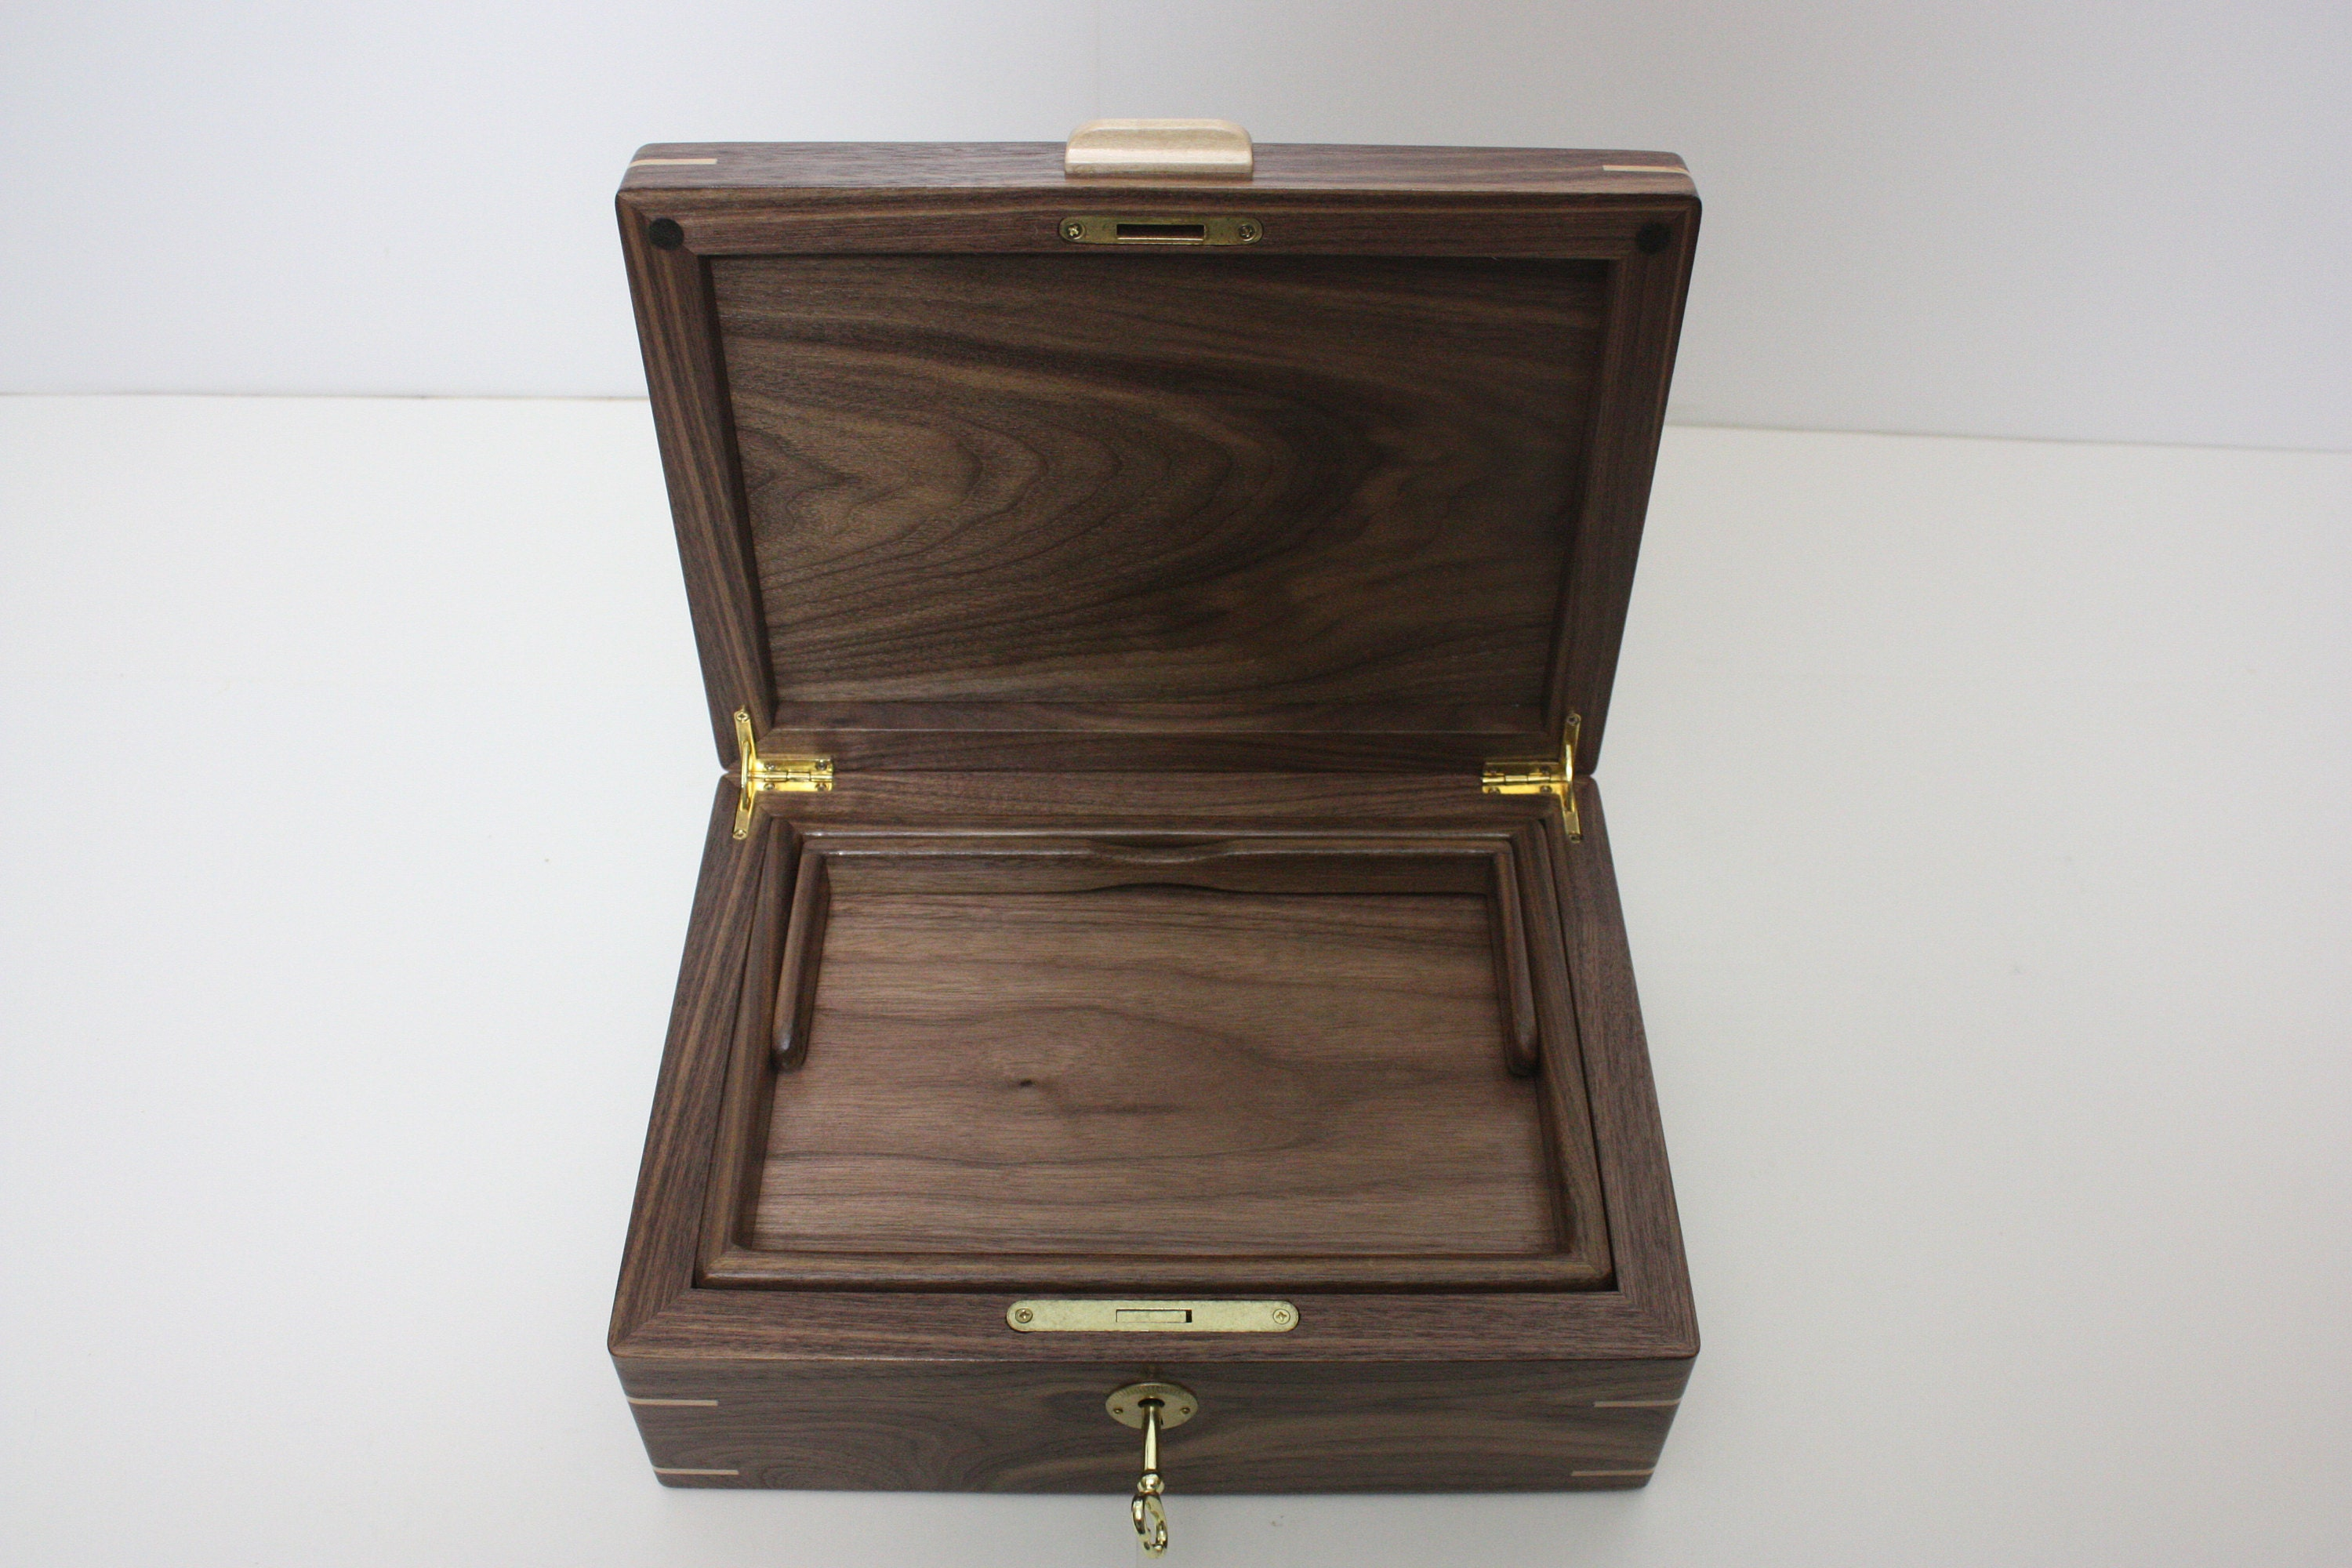 Box with Tray and Hinged Lid